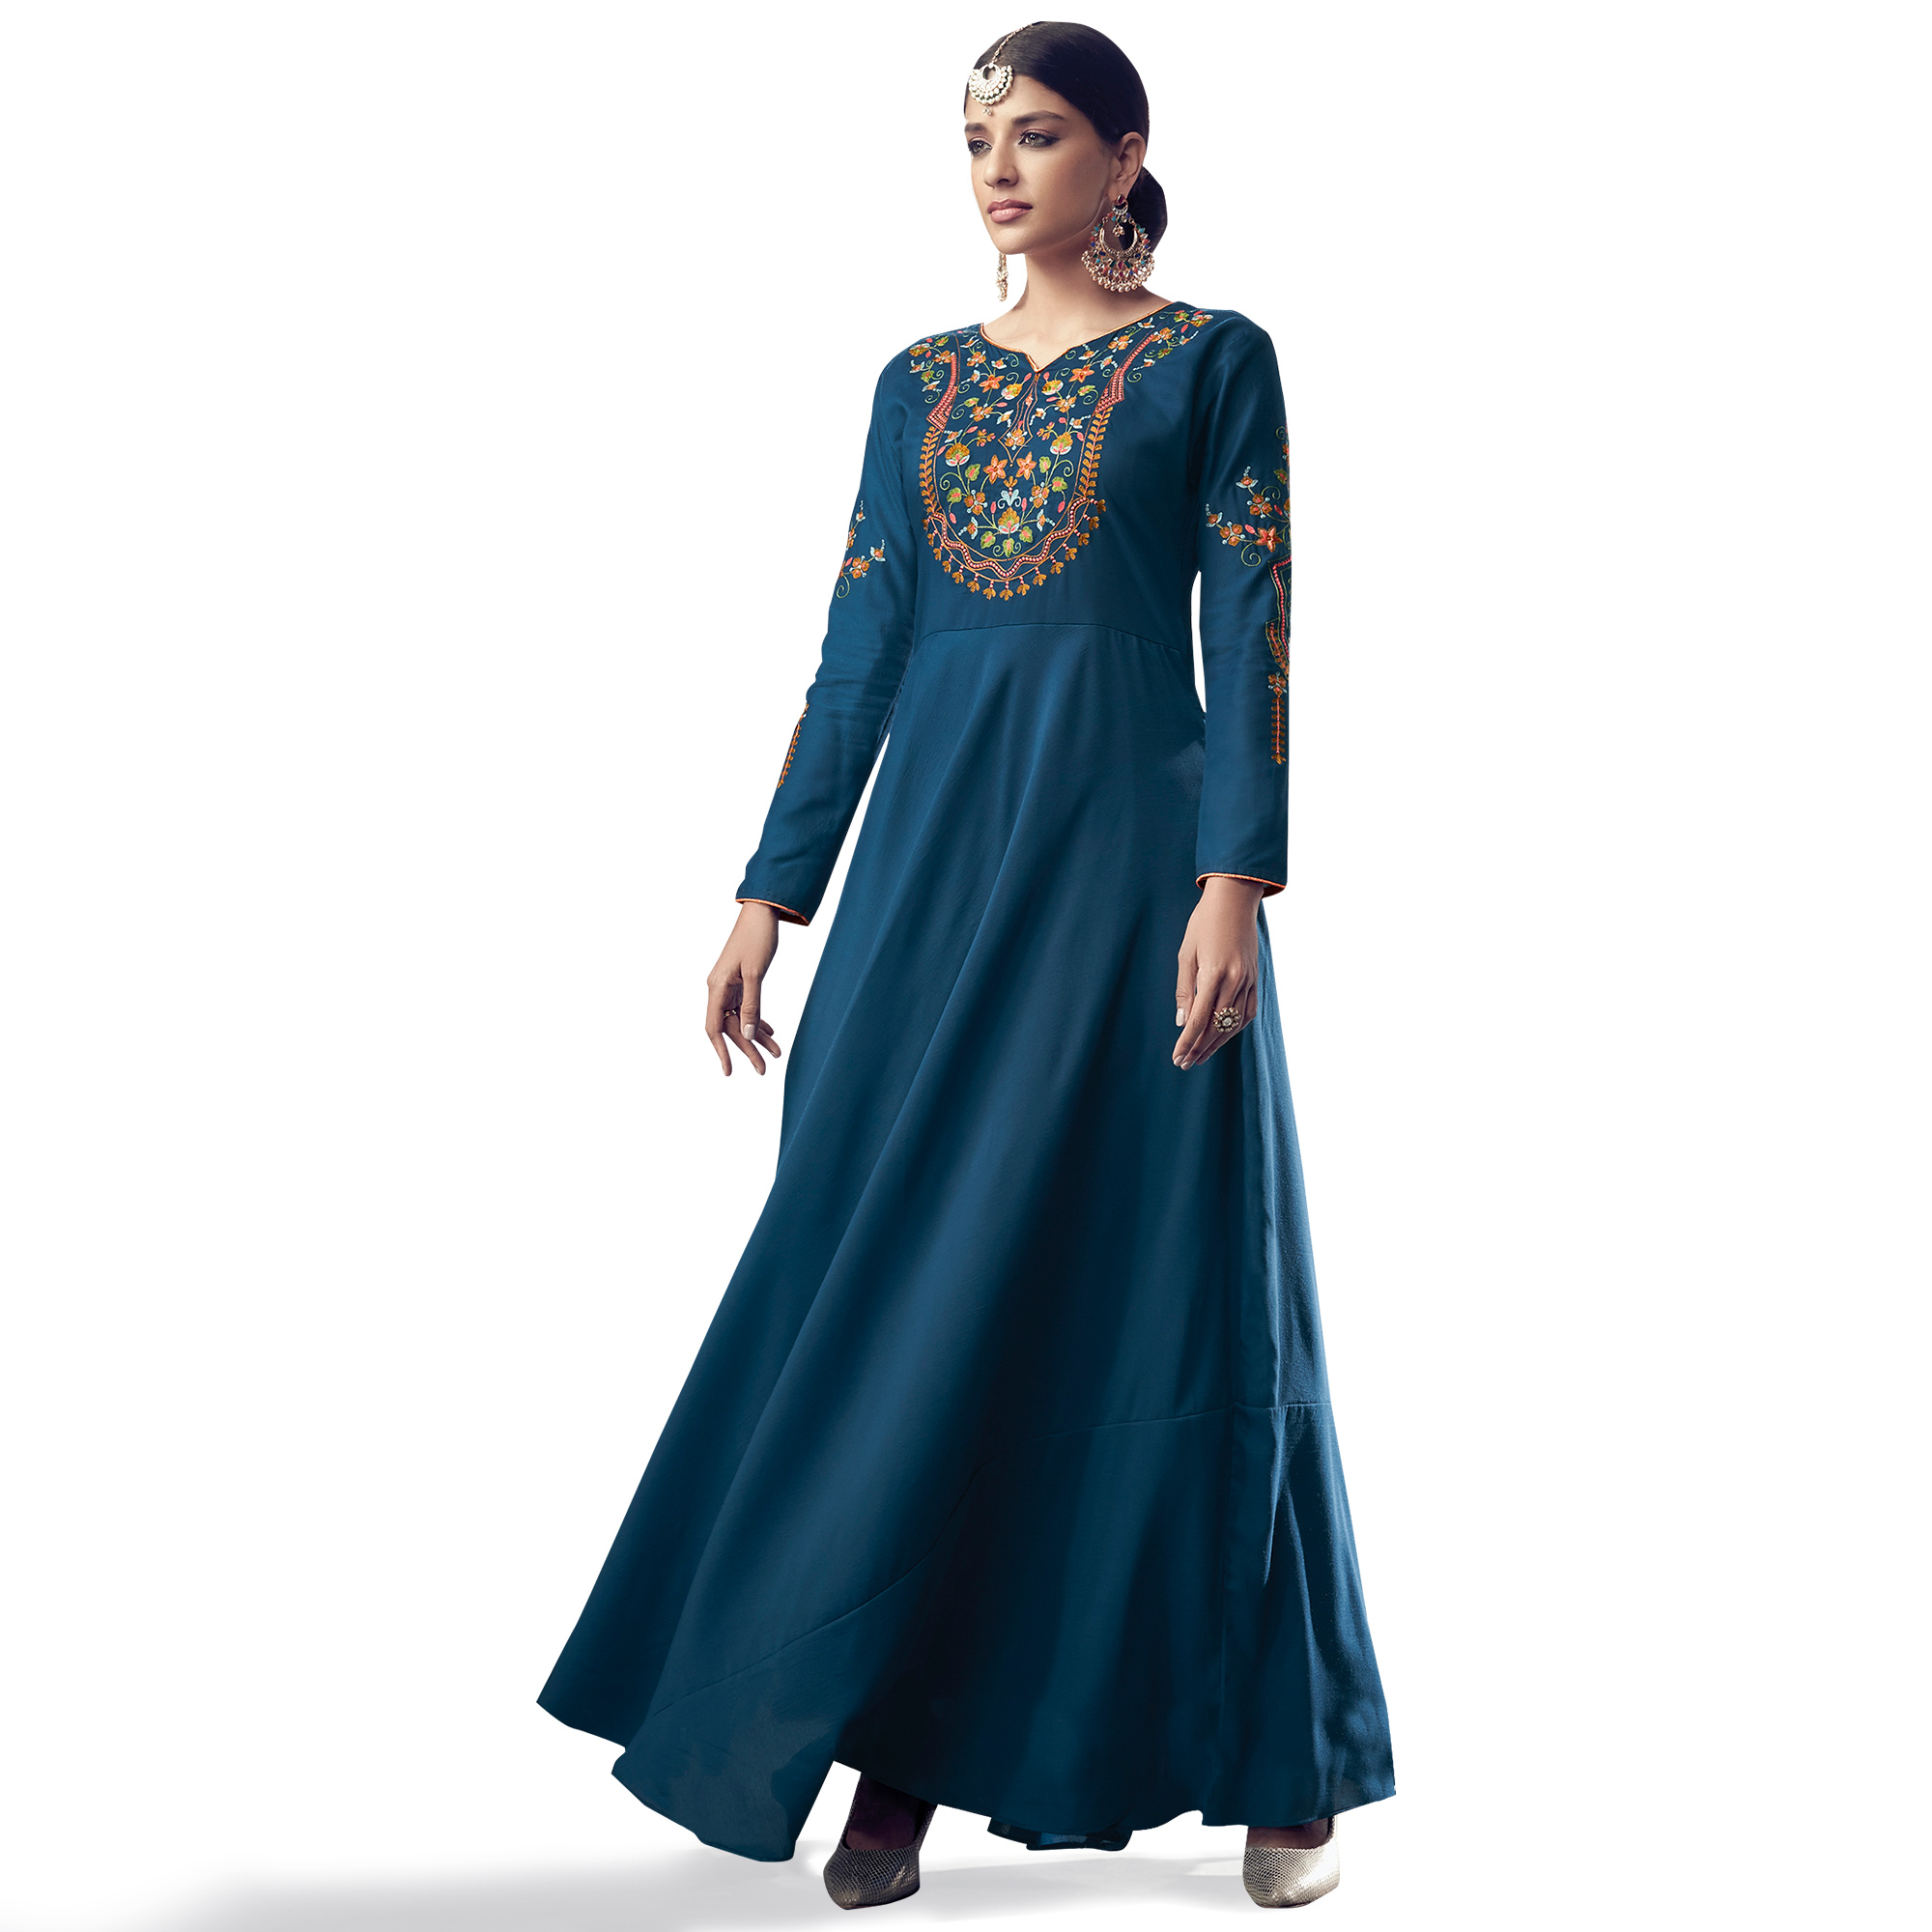 Jazzy Teal Blue Colored Party Wear Embroidered Cotton Anarkali Suit